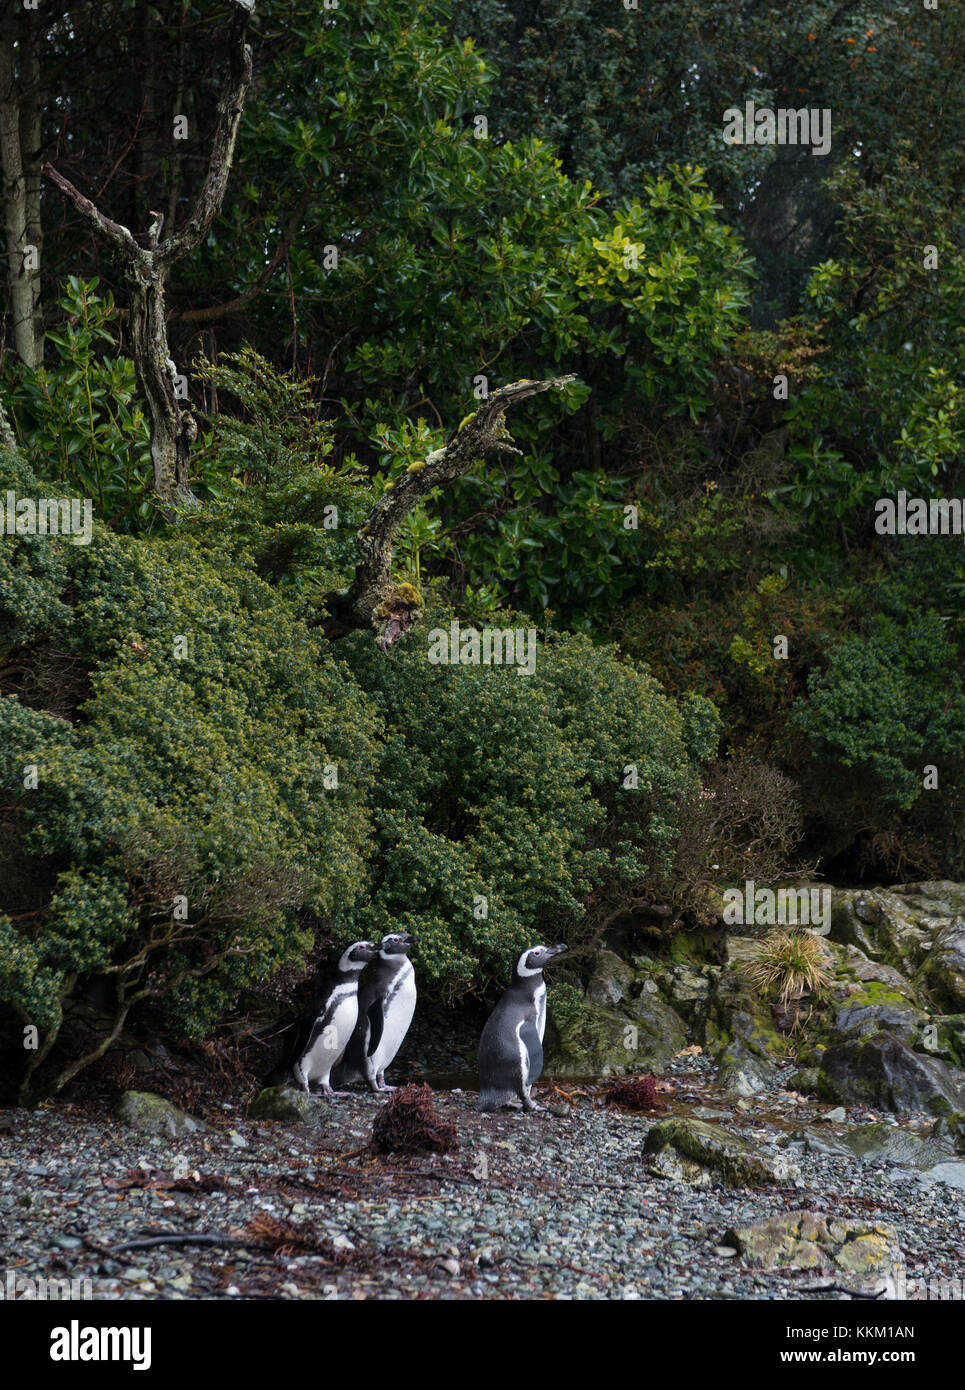 Magellanic Penguins near their breeding colony on an island in southern Chile - Stock Image